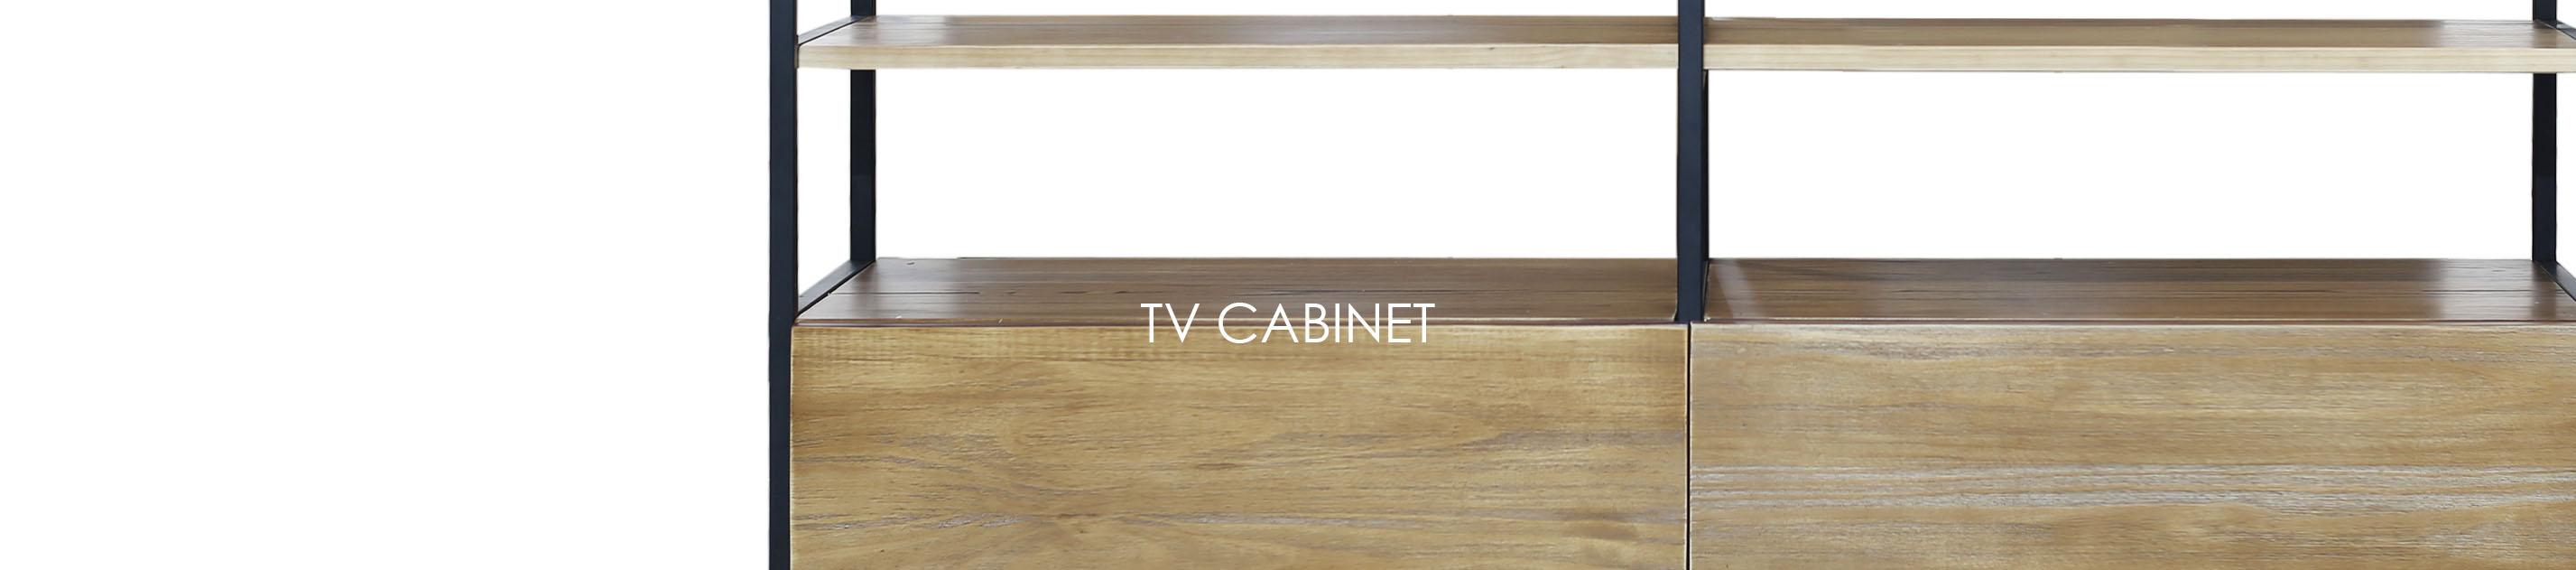 Hong Kong Furniture Shop Announces an Attractive Range of TV Cabinets & Table Lamp At Affordable Prices